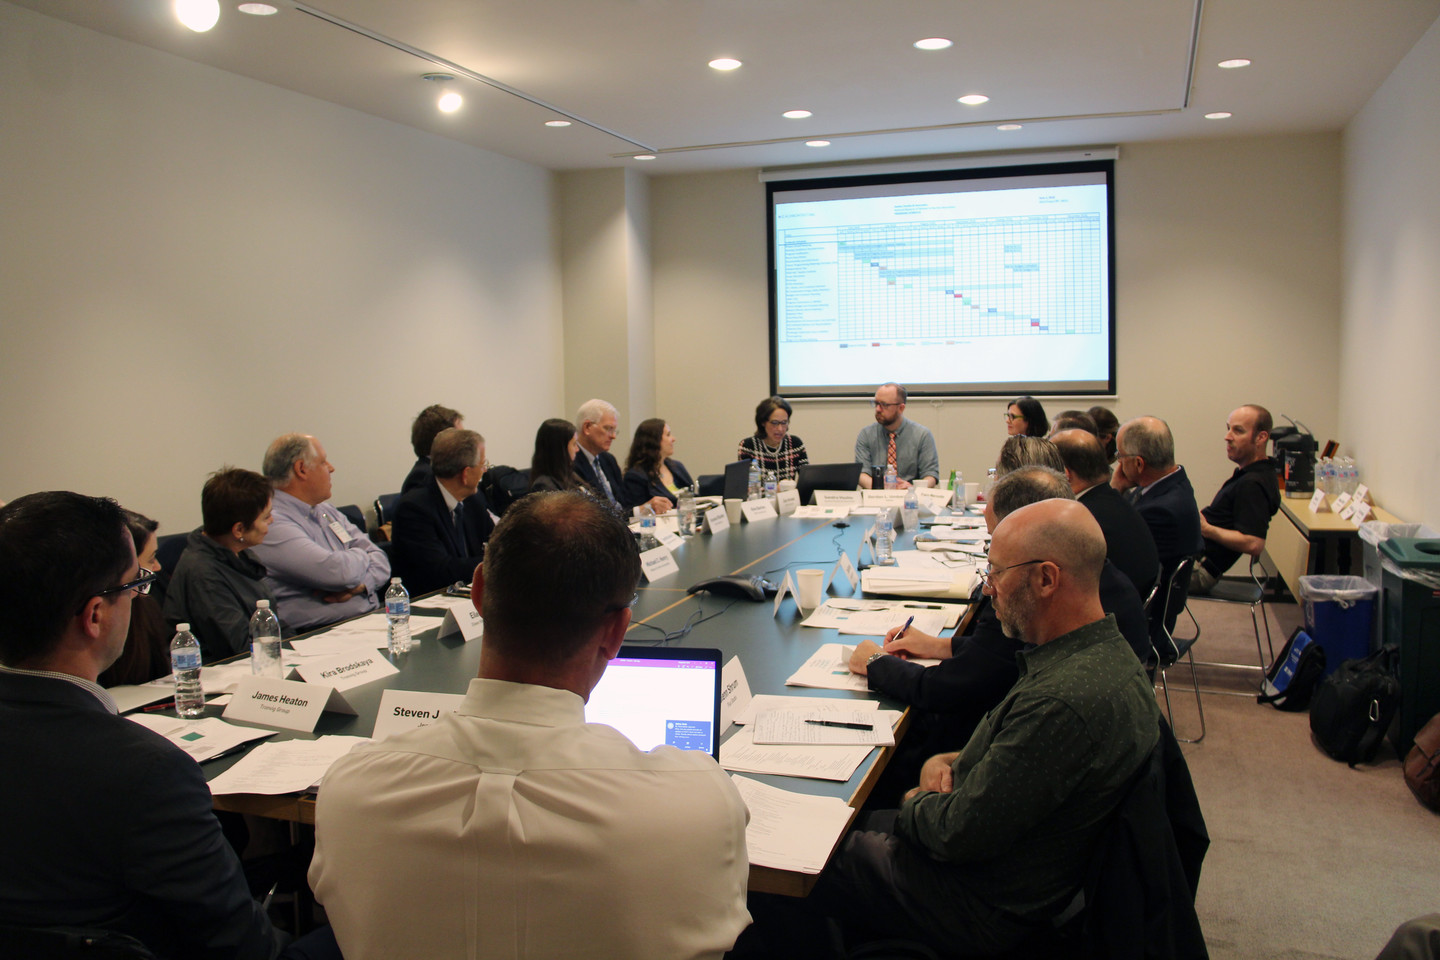 Multiple people attend a meeting around a large rectangular conference table.